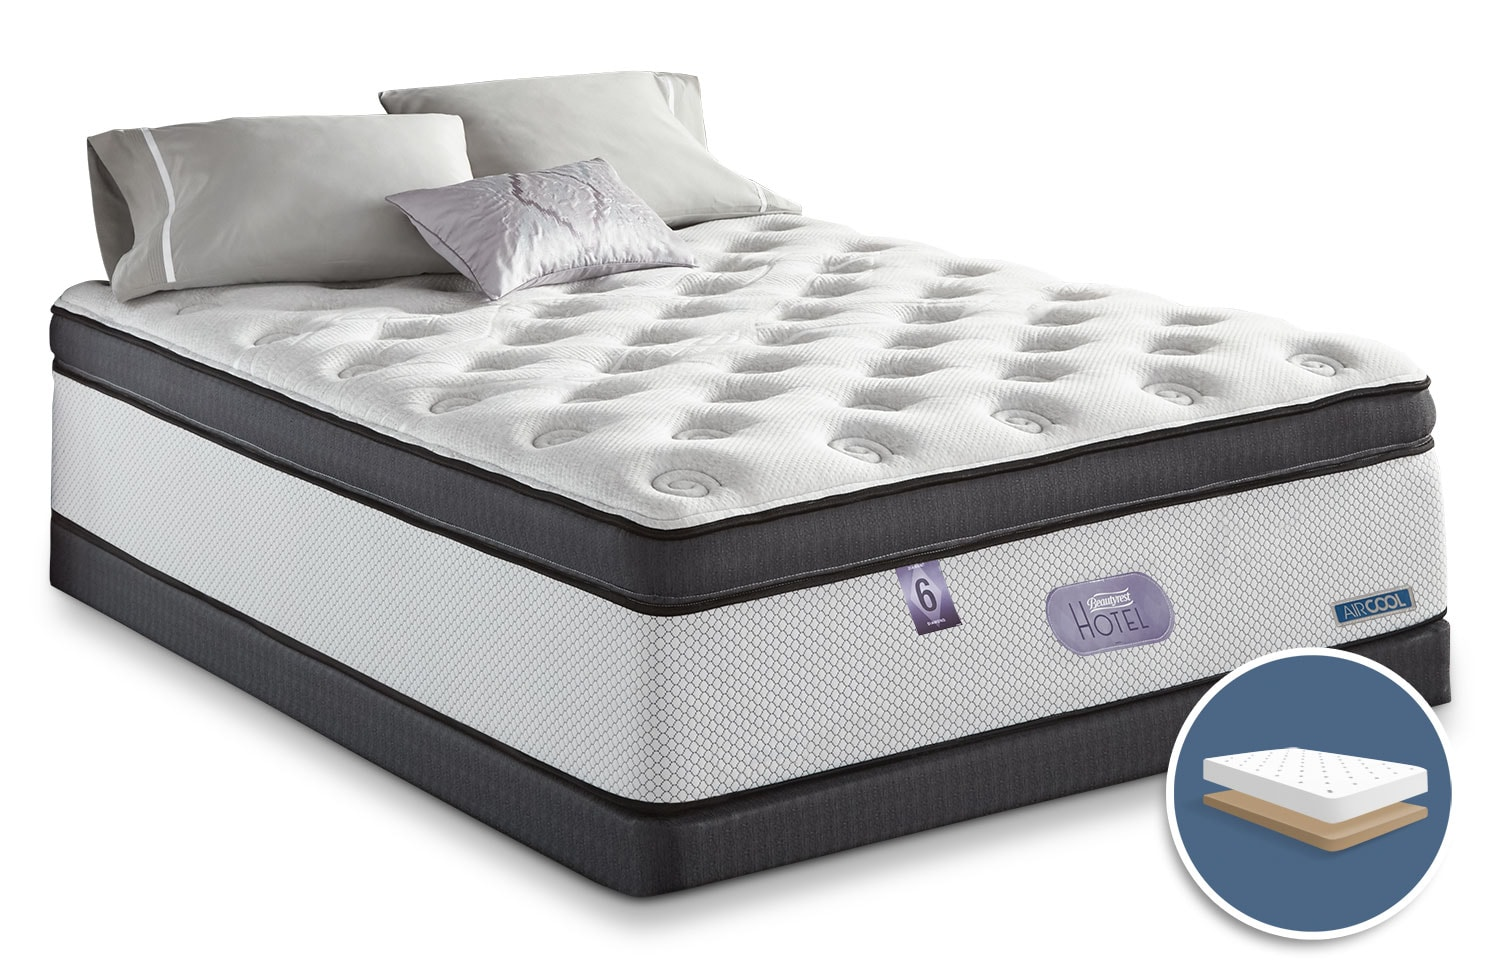 Simmons Beautyrest® Hotel Diamond 6.0 Ultra Comfort Top Plush Low-Profile Queen Mattress Set